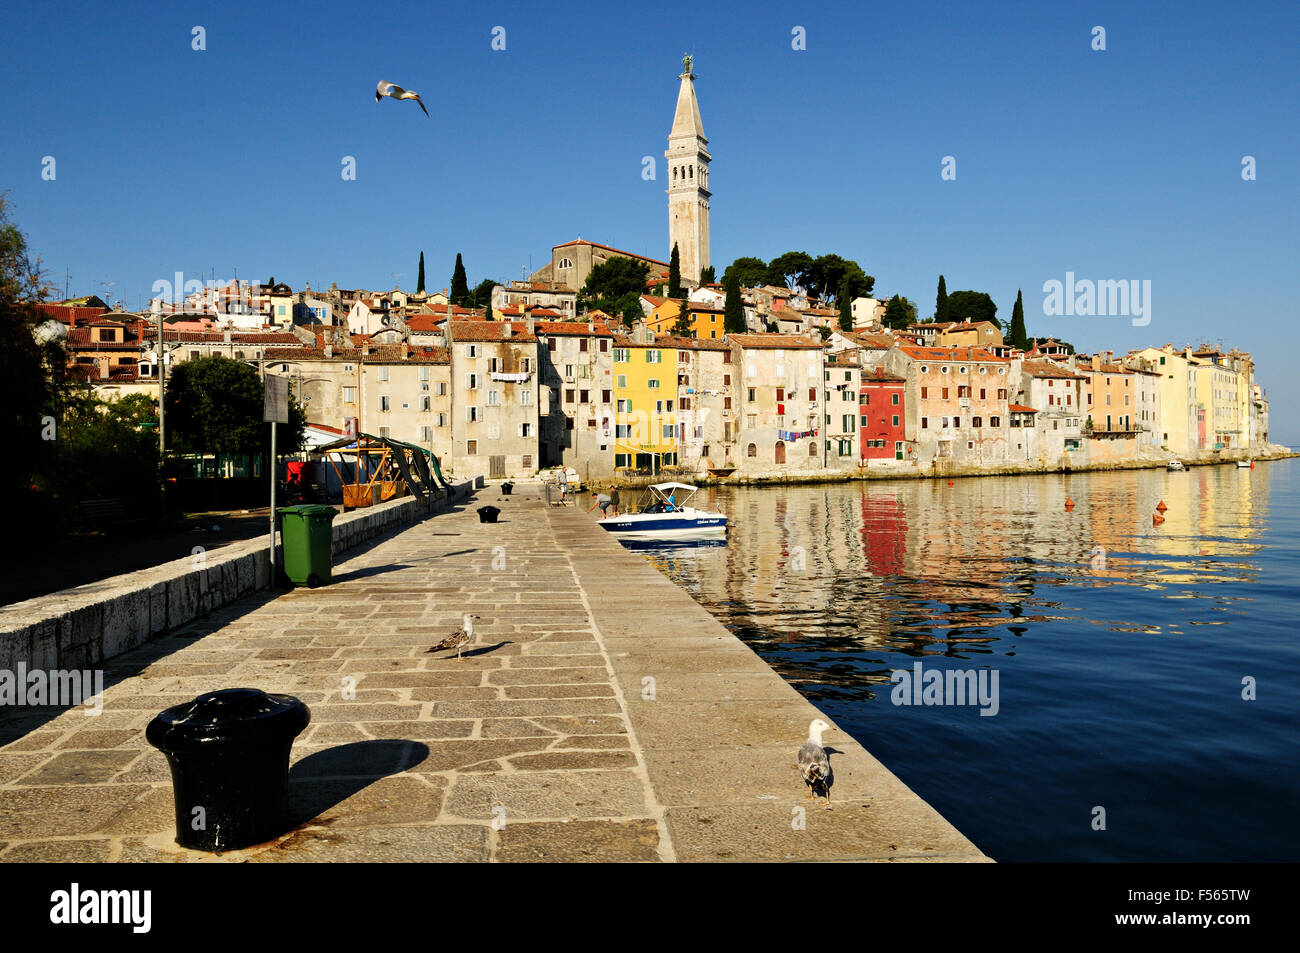 Old Town of Rovinj with bell tower of Saint Euphemia's basilica, Istria, Croatia - Stock Image